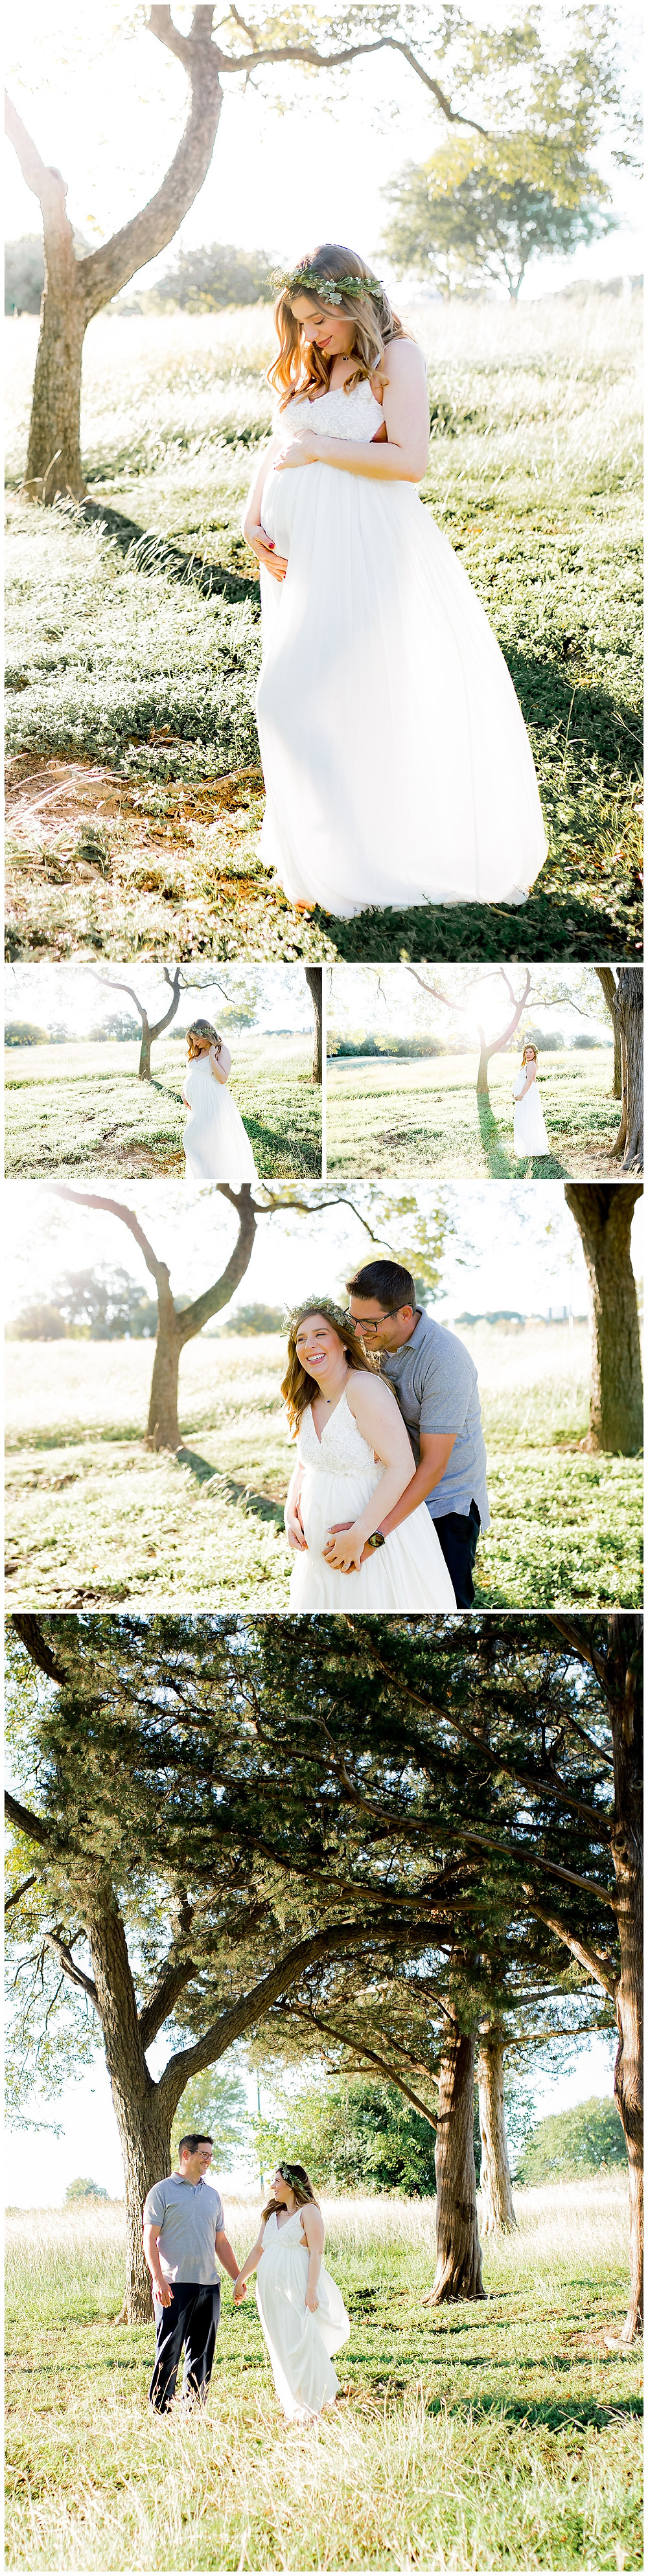 bohemian maternity pictures, boho photo session, floral crown examples